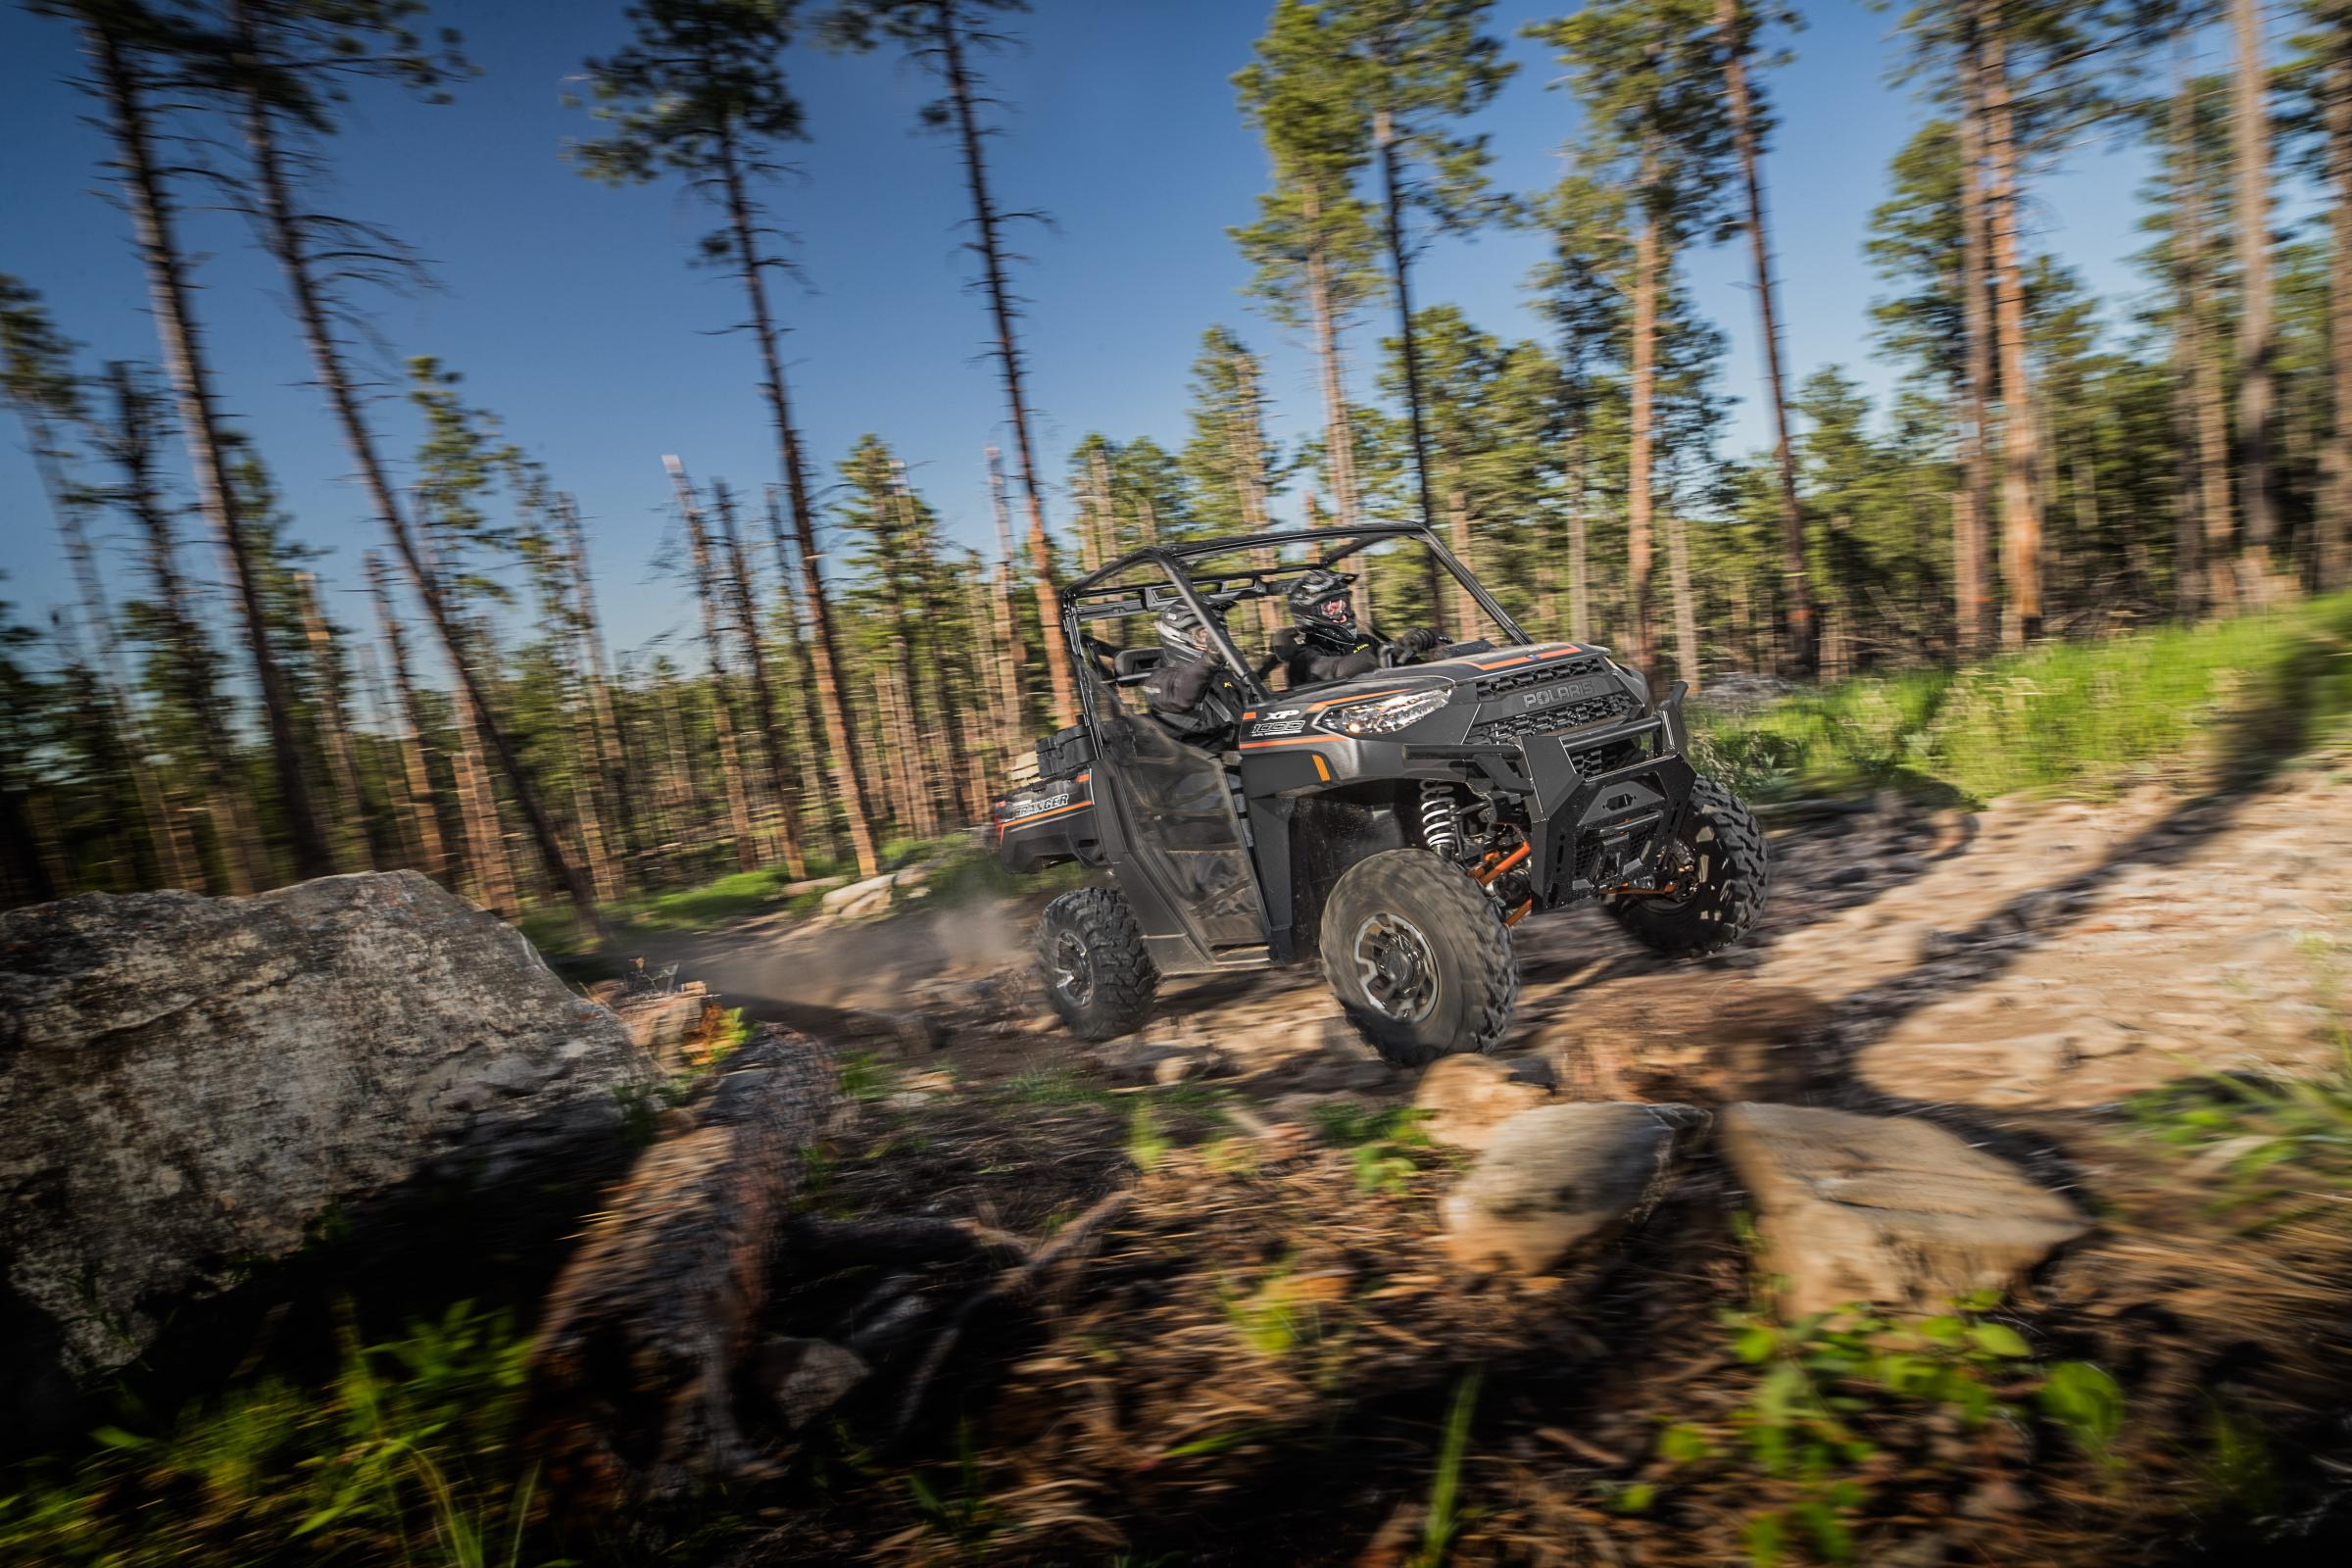 The all-new Ranger XP 1000 from Polaris